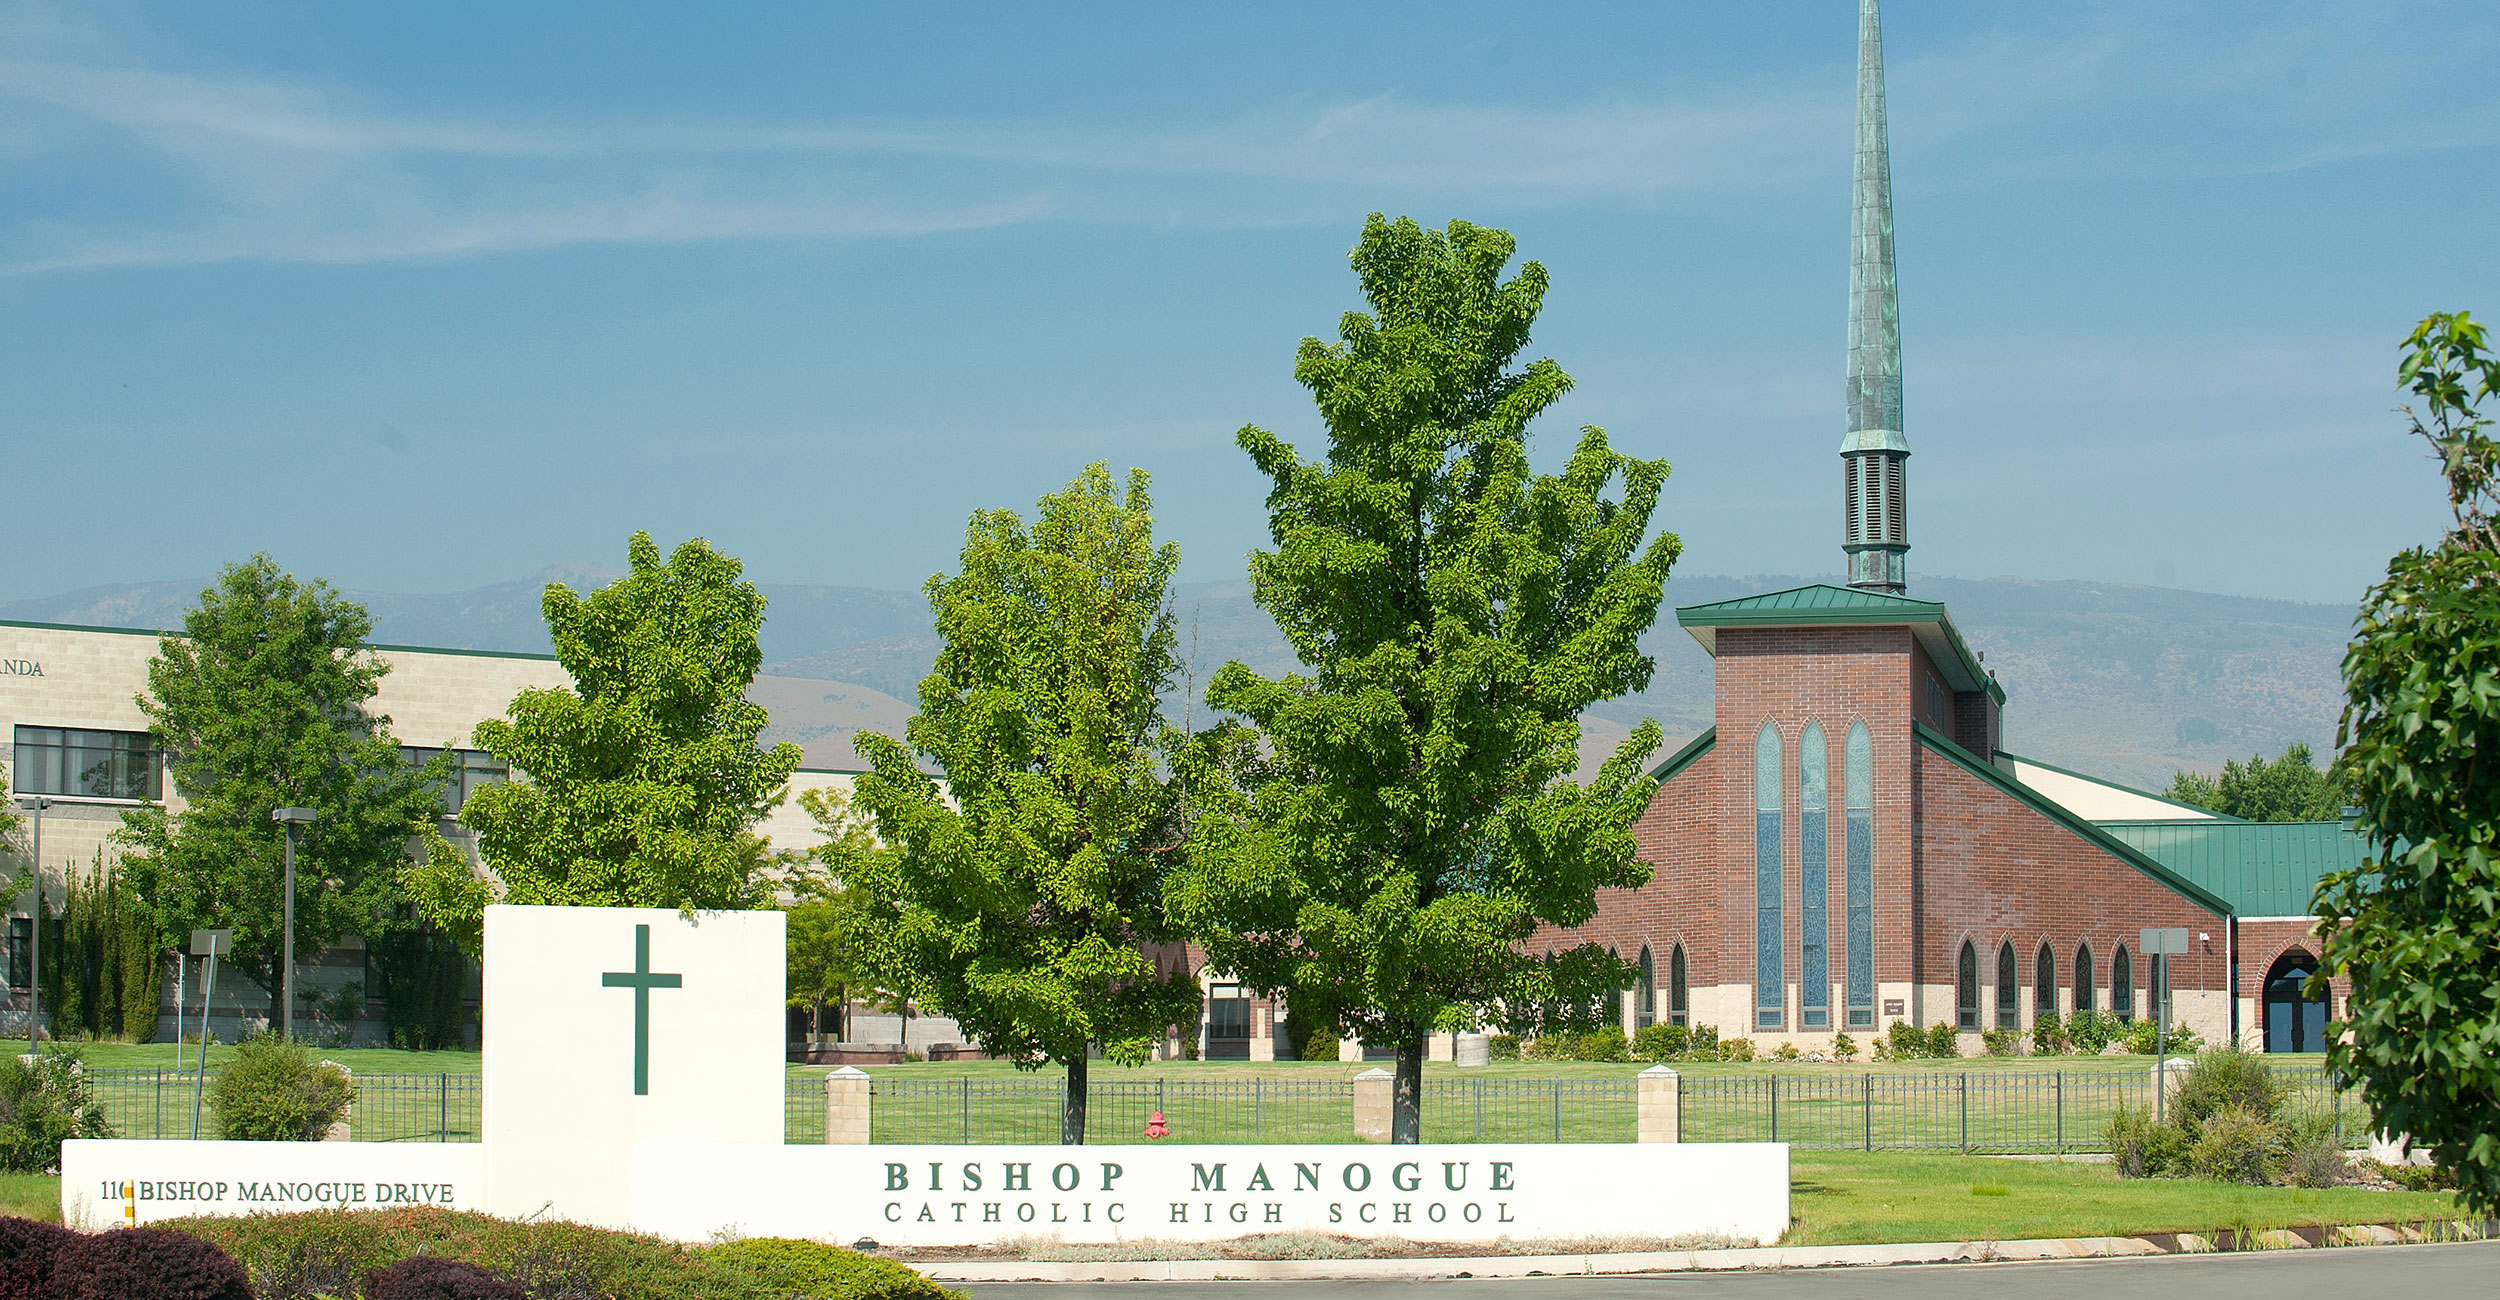 BISHOP-MANOGUE.jpg